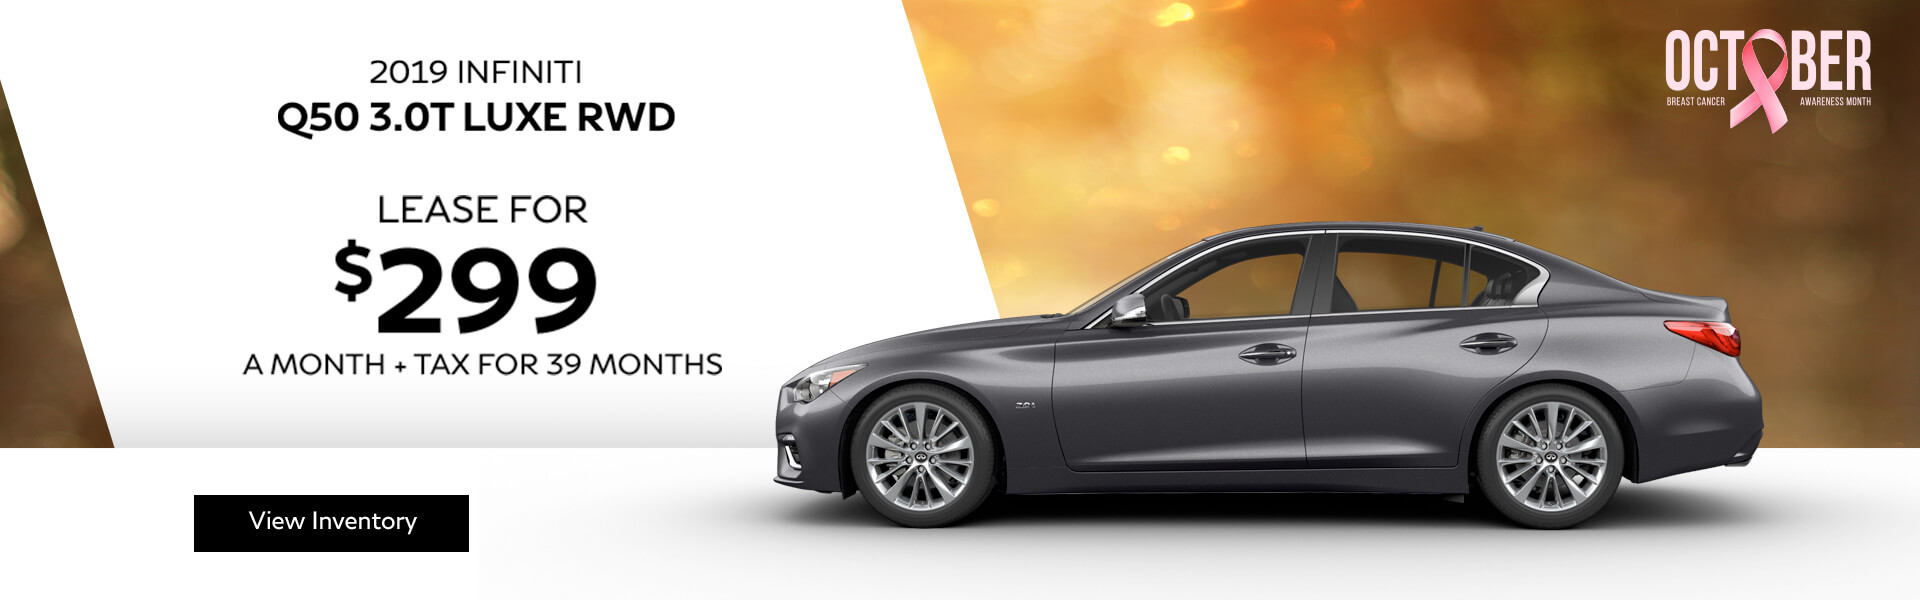 Infiniti Lease Specials >> Infiniti Of South Bay Specials I Great Deals On Infiniti